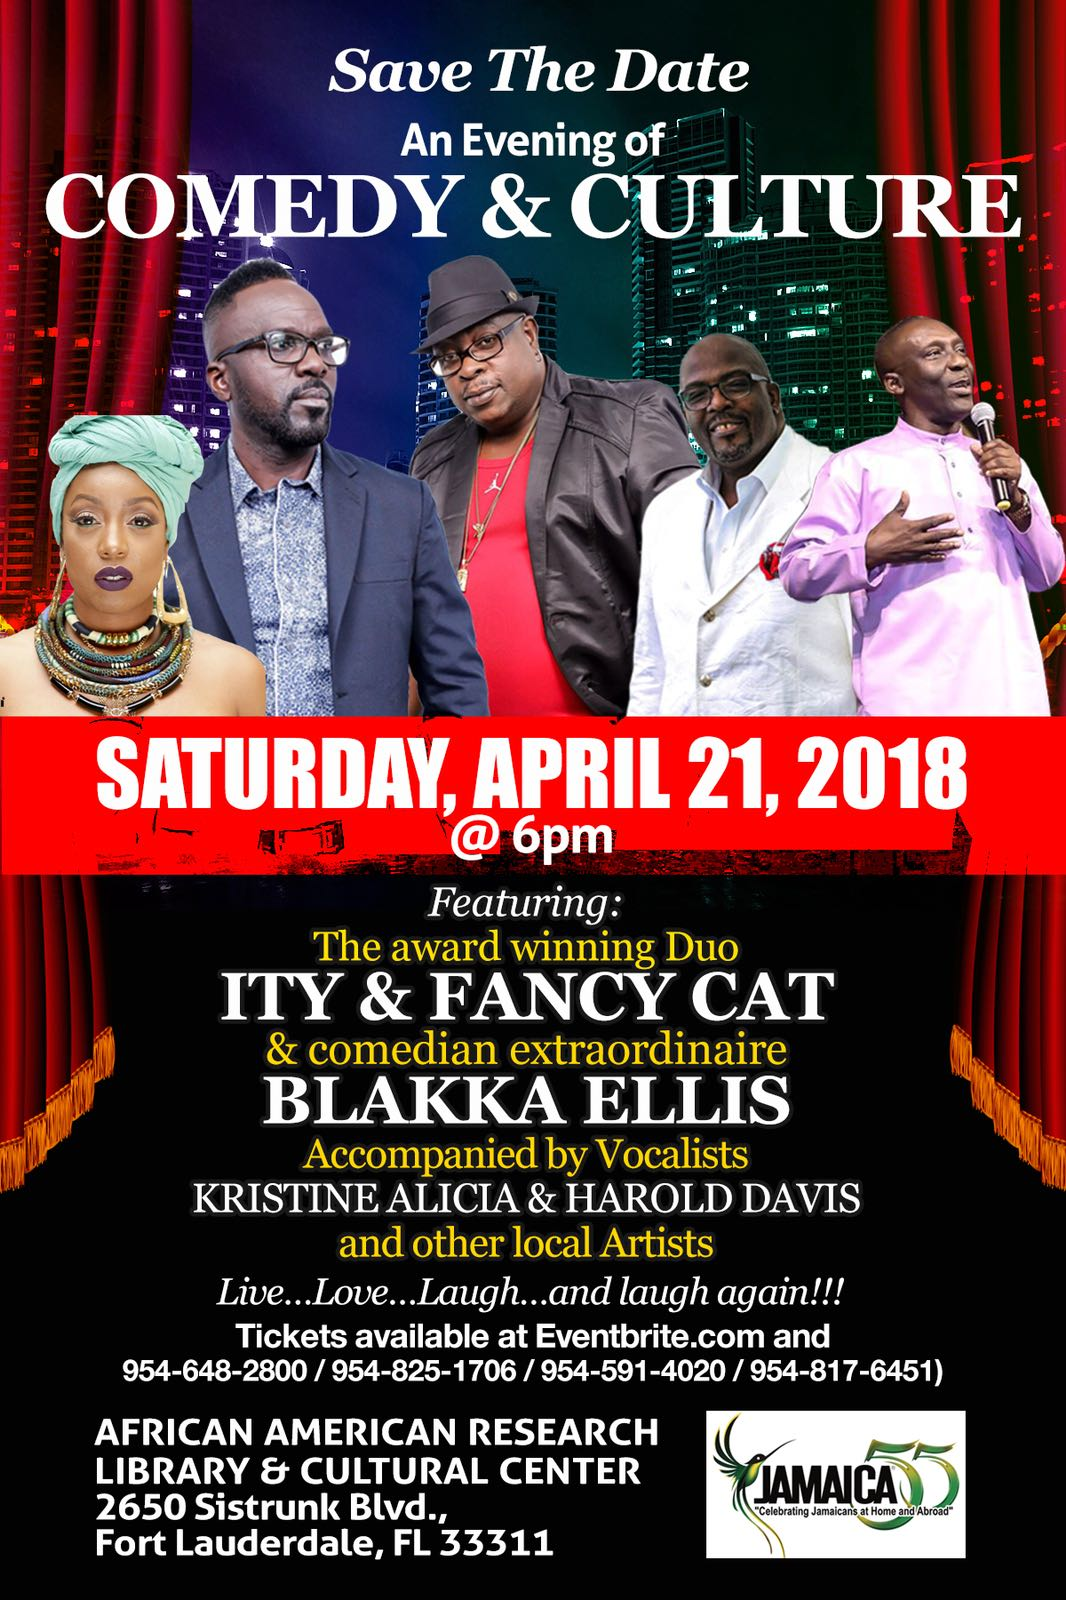 Comedy & Culture @ African American Research Library & Cultural Center | Fort Lauderdale | Florida | United States